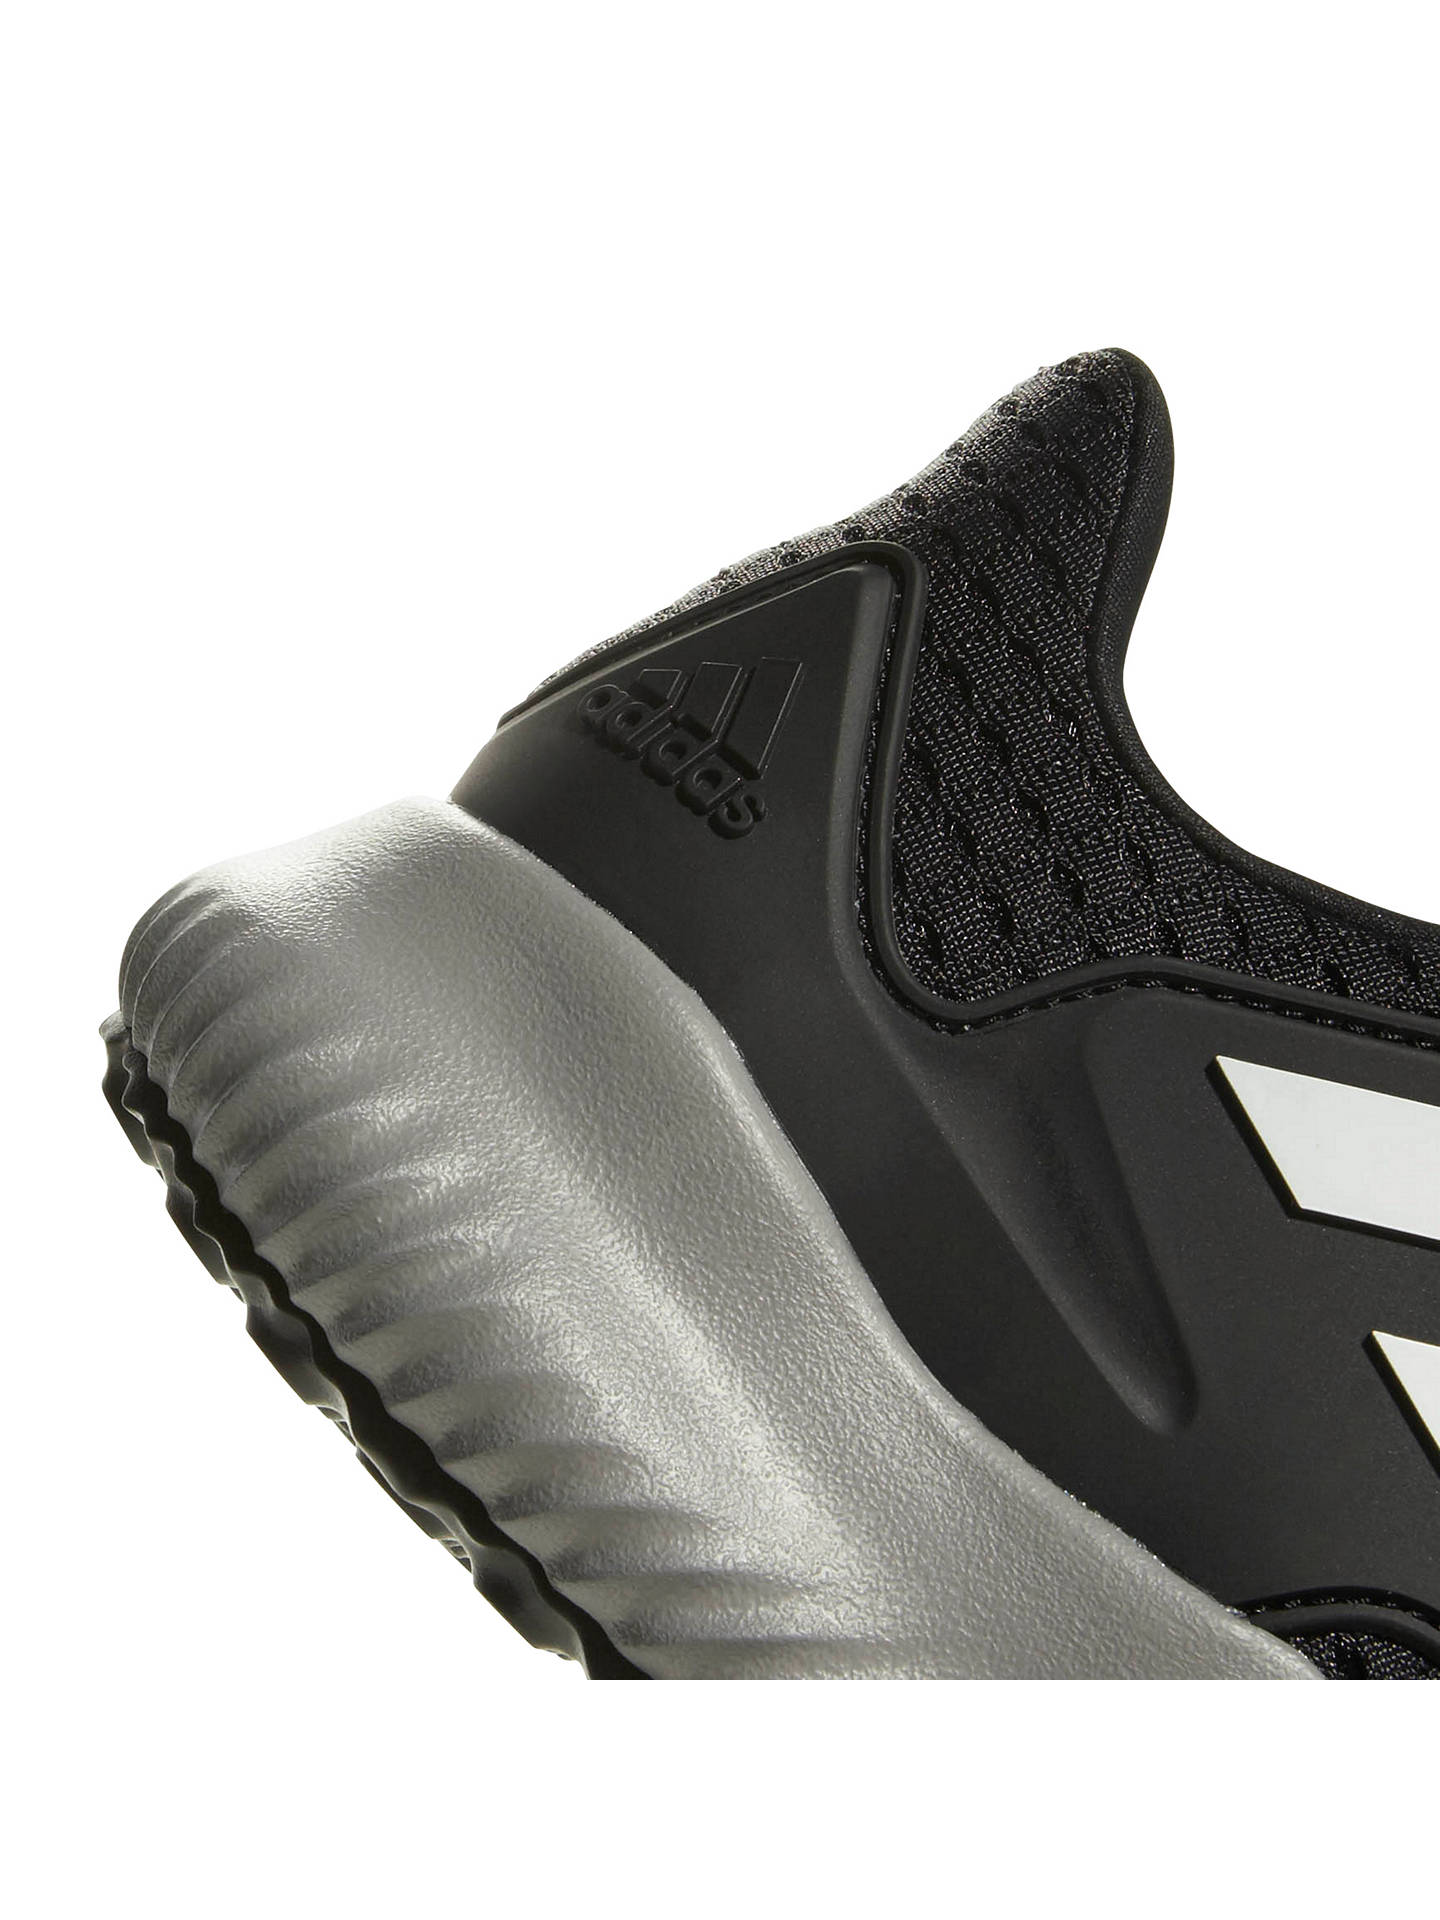 9acf3b1f adidas Alphabounce RC 2.0 Women's Running Shoes, Carbon/White at ...